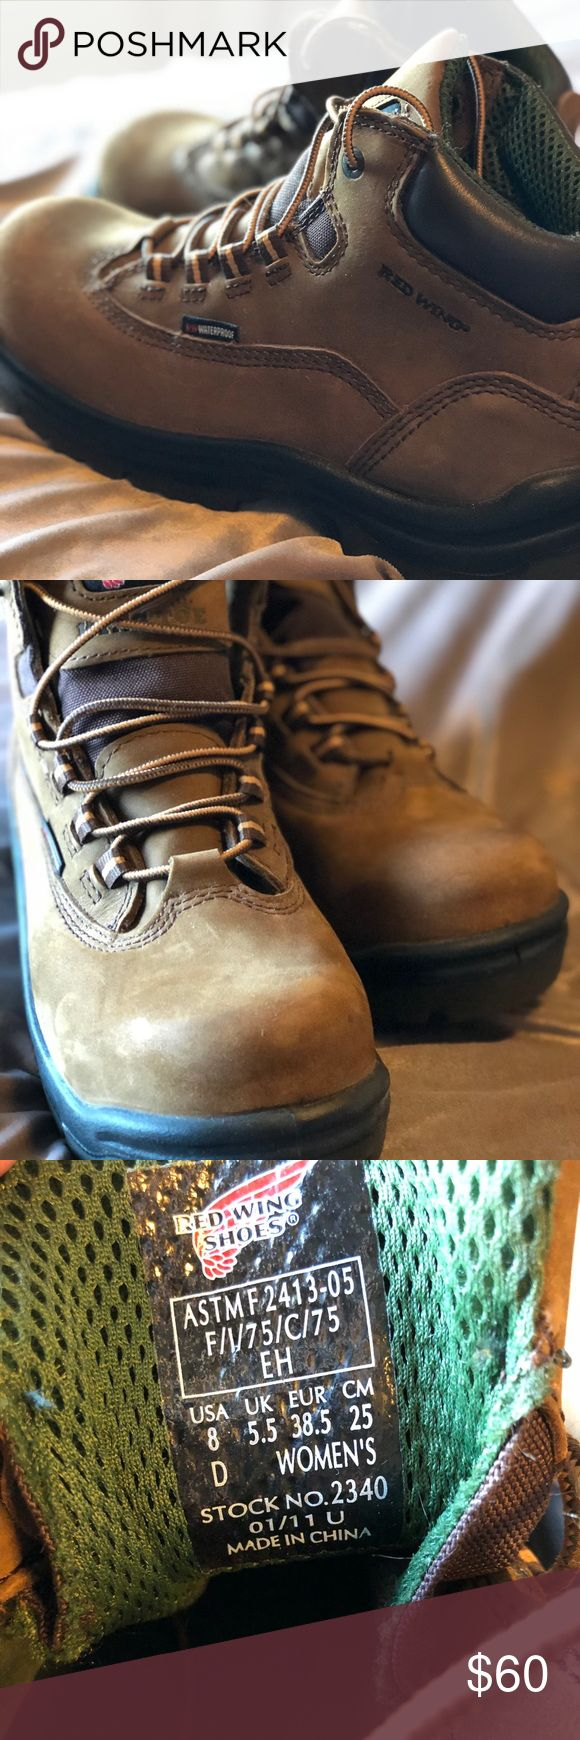 ❤️HP❤️Red Wing Boots-King Toe✨ As you can see the bottoms look like they've never been used. Some minor scuffs on leather but in GREAT shape! Like New Red Wing Shoes Shoes Winter & Rain Boots